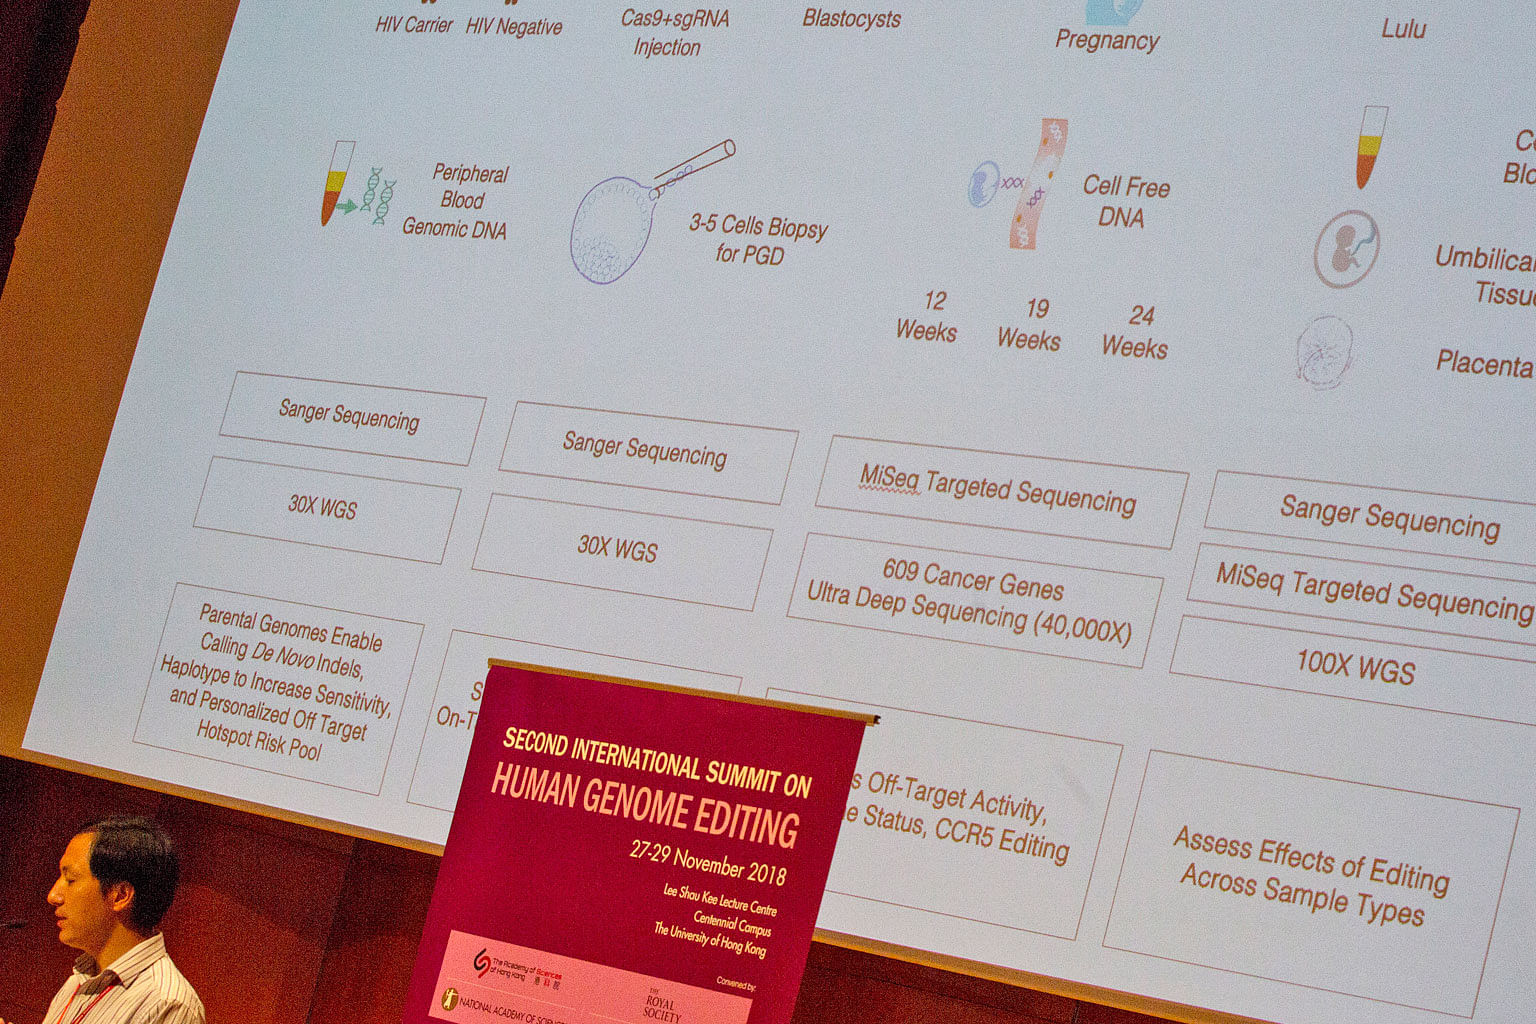 Chinese scientist He Jiankui presenting a slide of his work at the Second International Summit on Human Genome Editing in Hong Kong yesterday. Professor He, who claims to have created the world's first genetically edited twin babies, has defended his